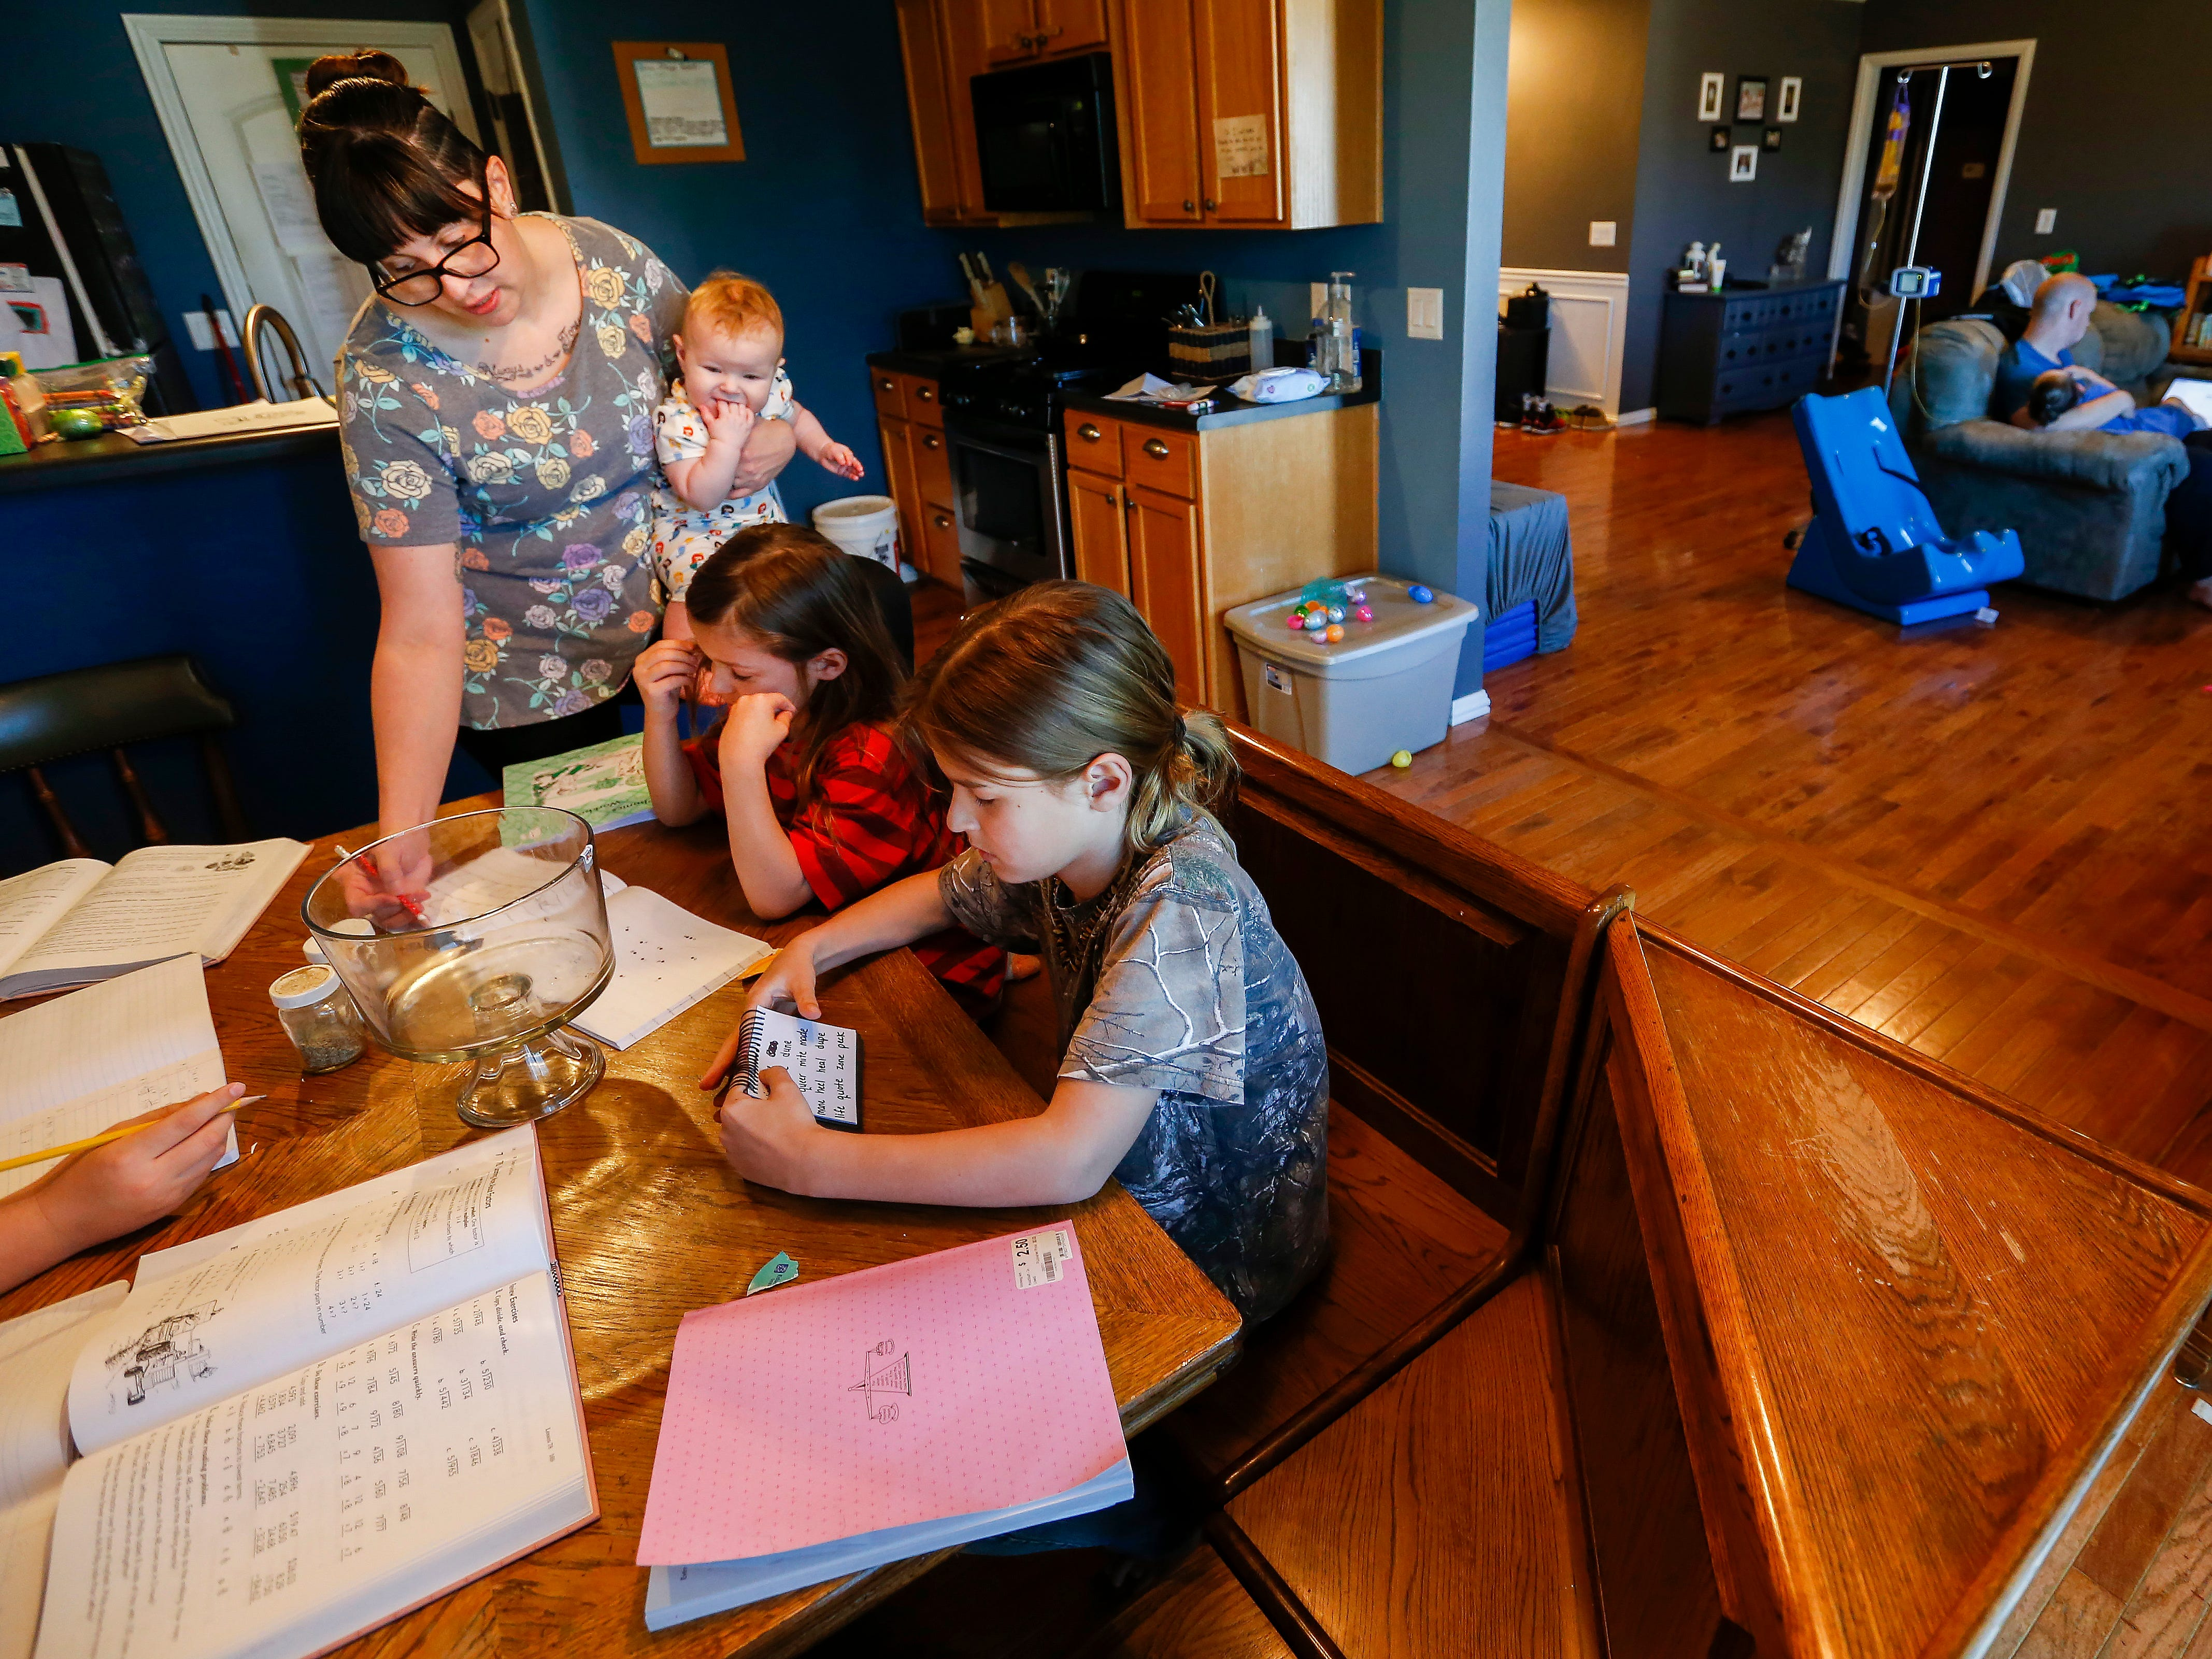 Ashley Markum holds her daughter Letty, 7-months, while helping Asher, 6, and Asa, 8, with their school work at their home in Rogersville on Friday, April 27, 2018. Chris Markum sits on the couch i the other room holding his son Ayden, 5, while researching his insurance coverage for an eyegaze communication device for Ayden.